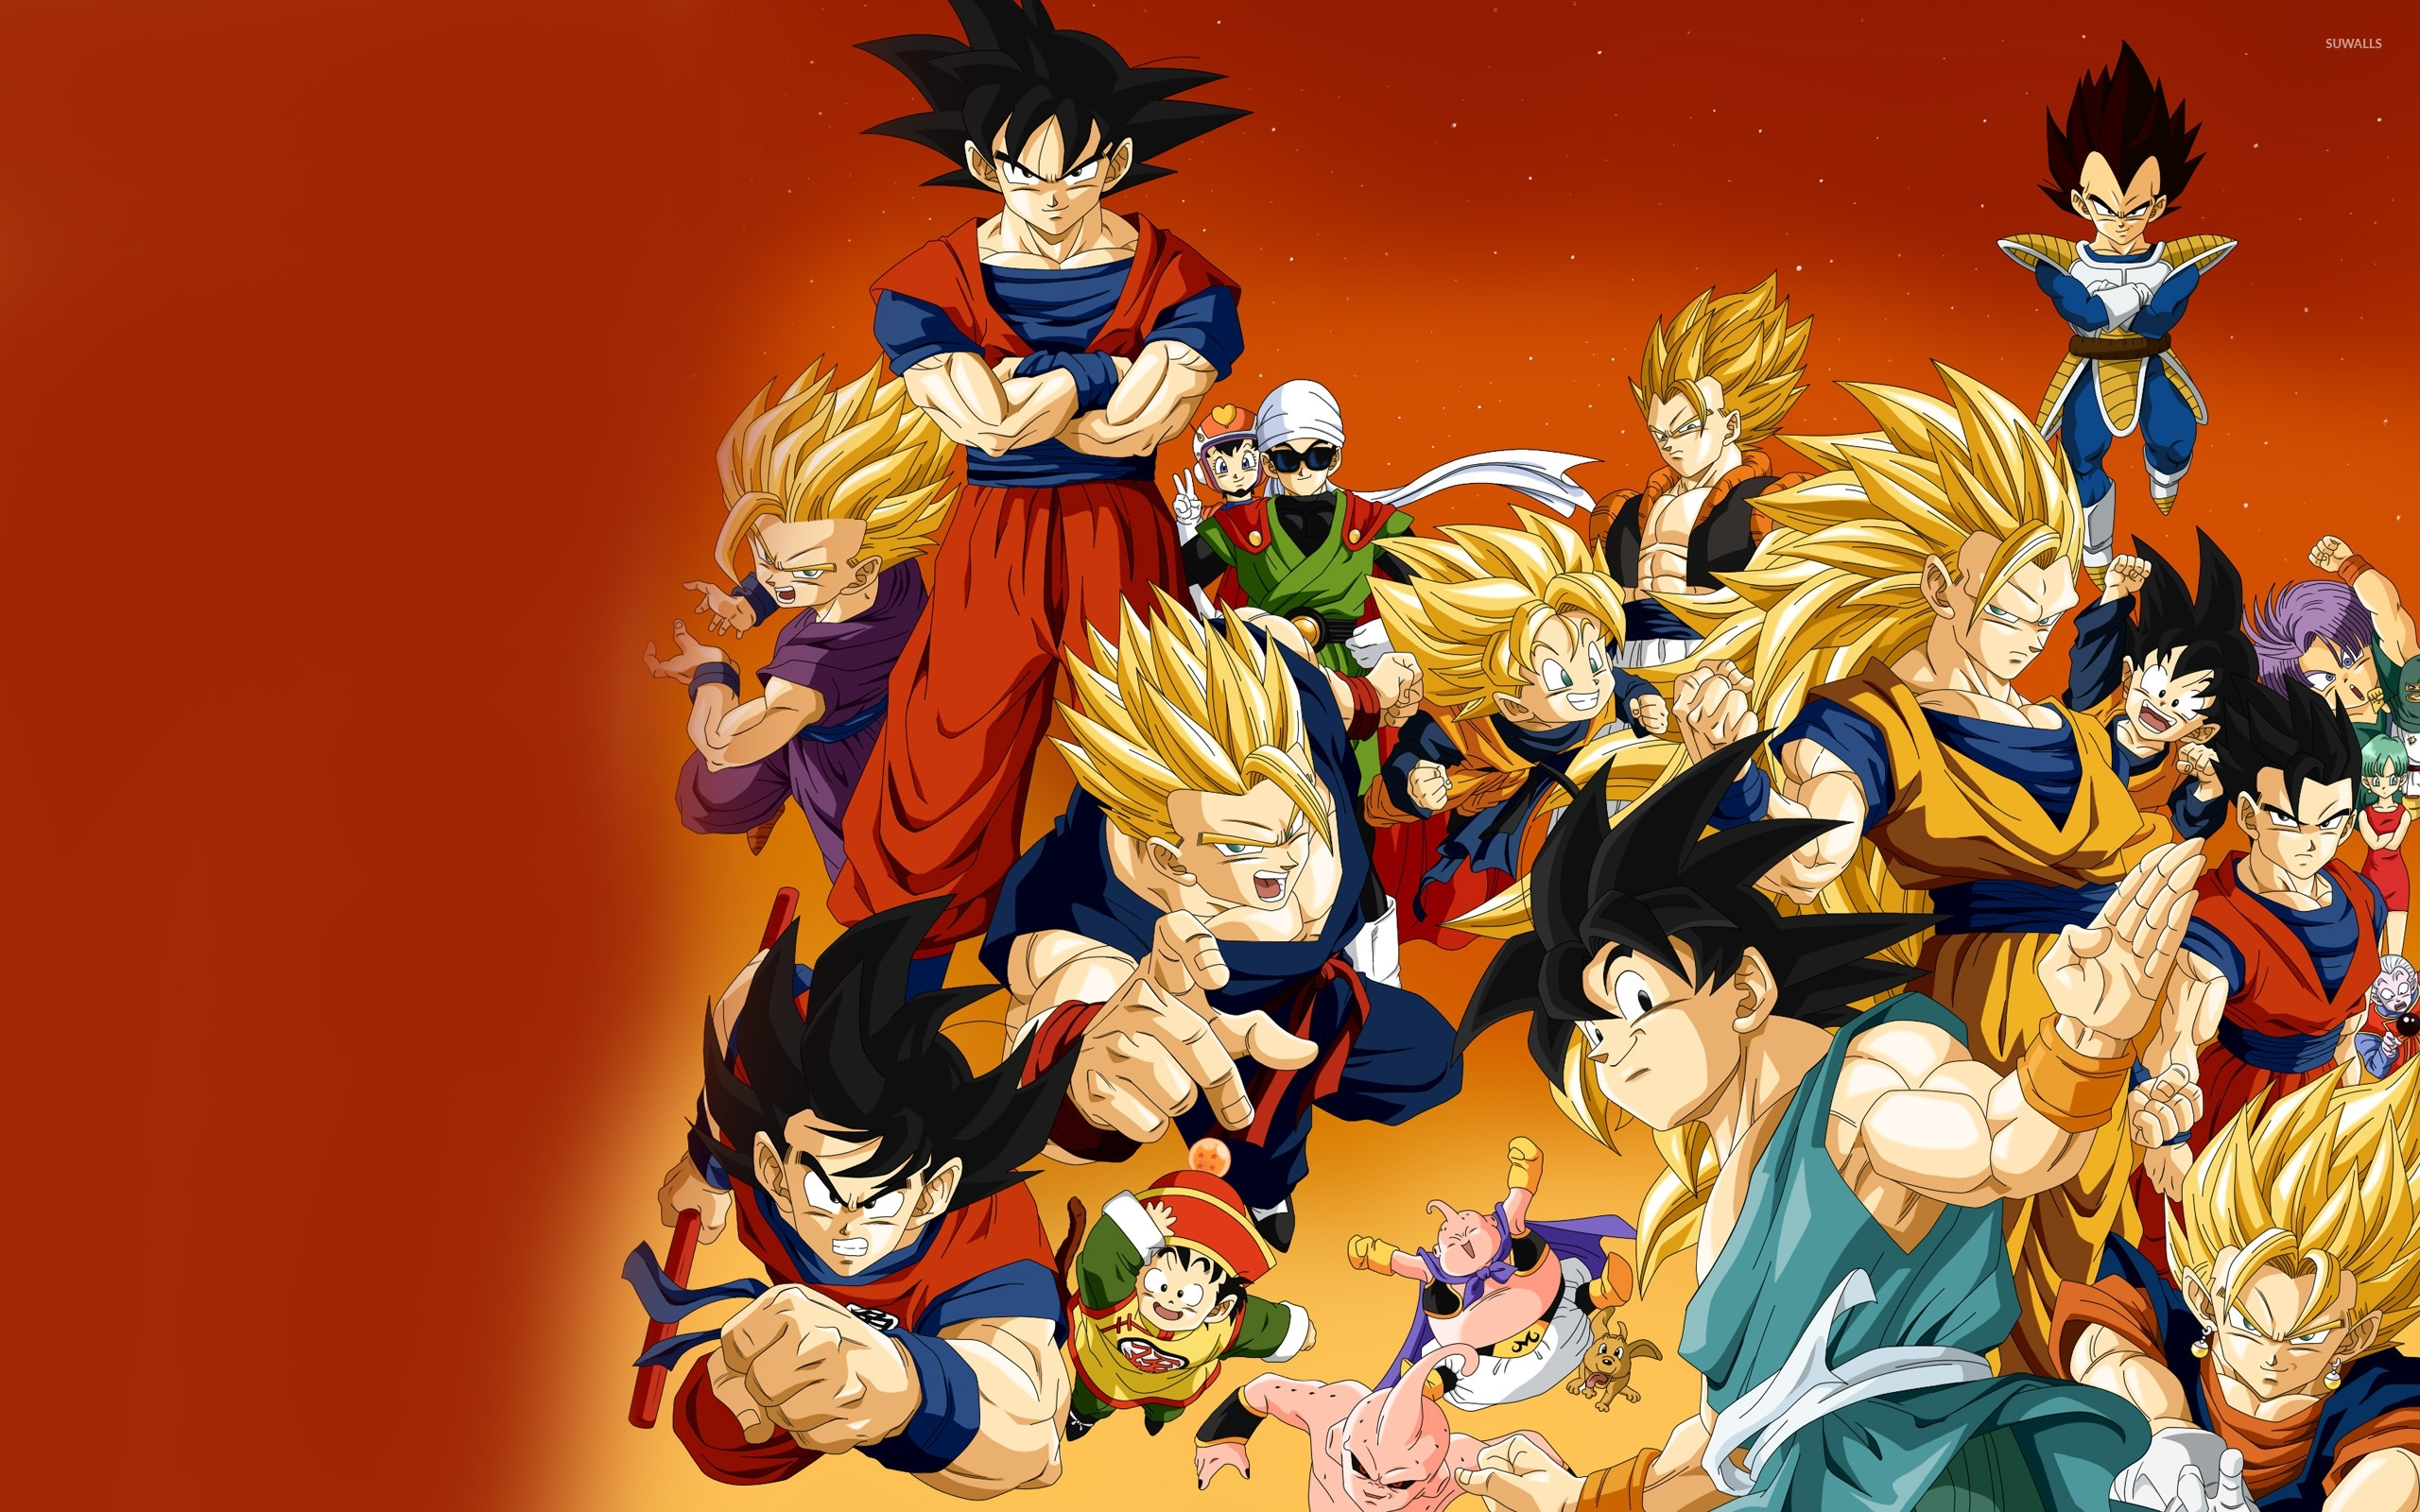 dragon ball z wallpapers high quality download free | dragon ball